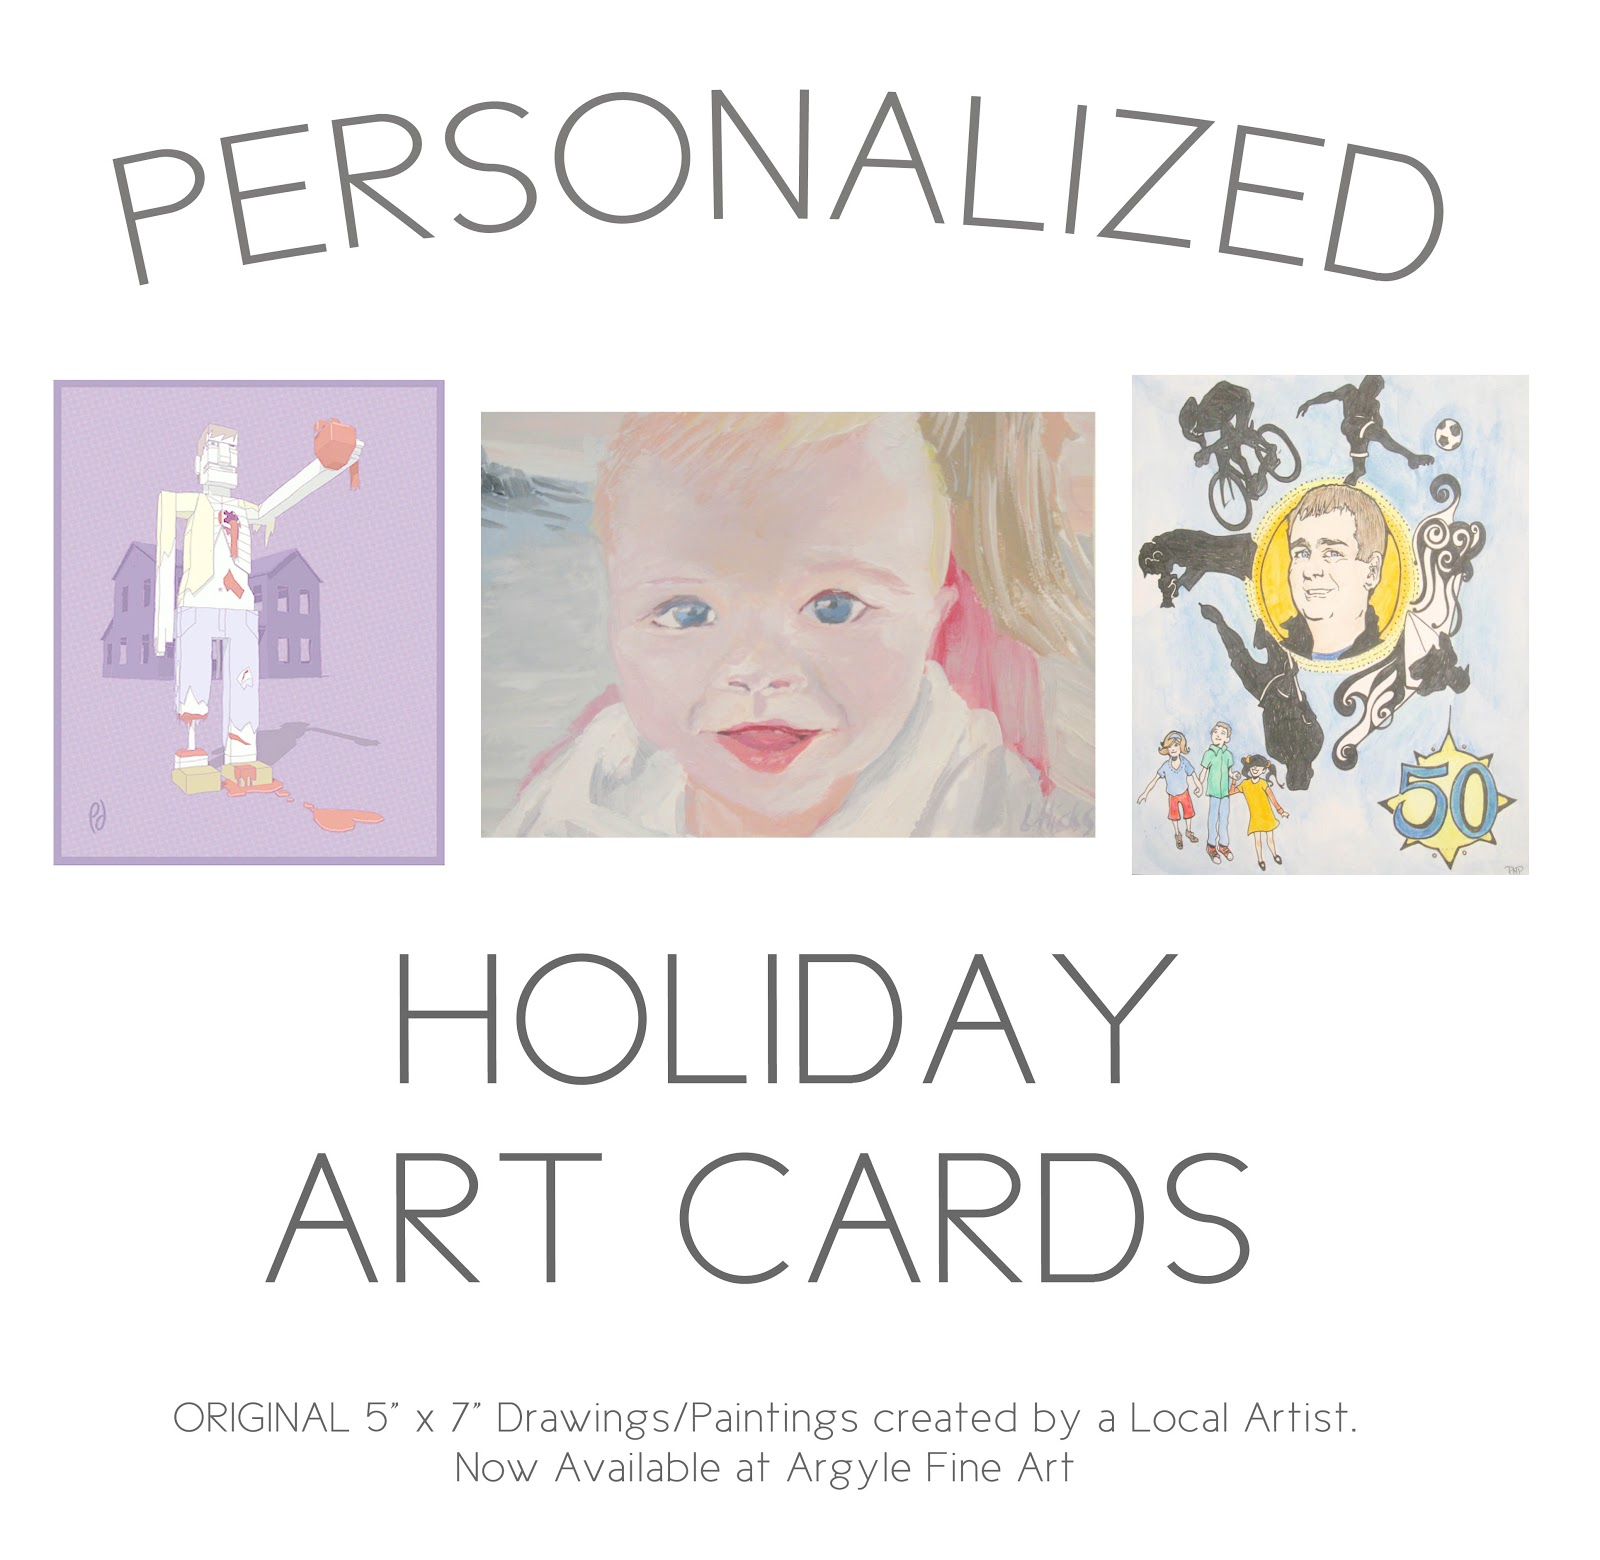 Argyle Fine Art: Personalized Holiday Cards